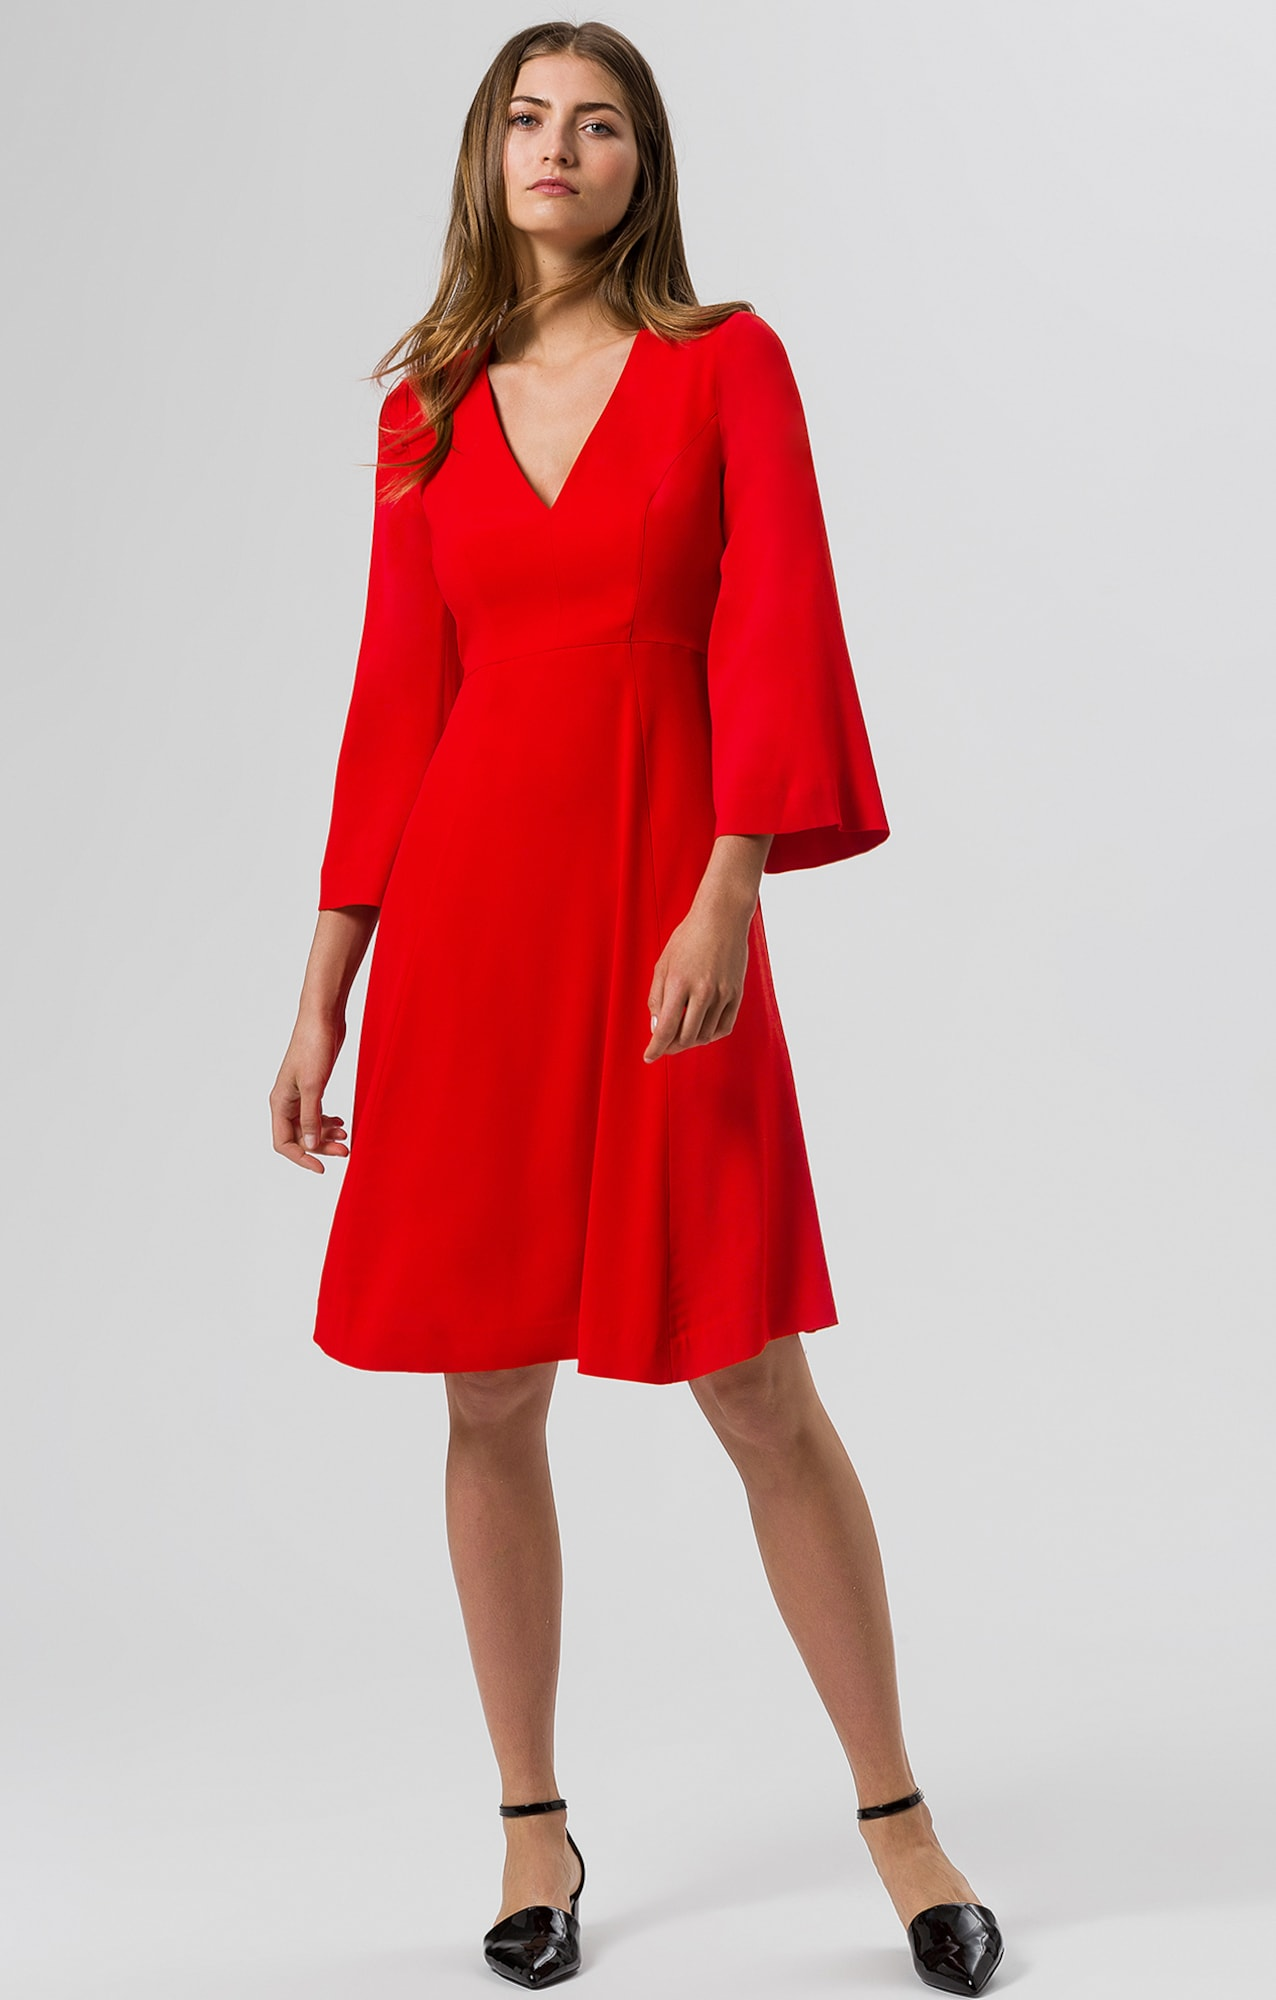 IVY & OAK Kleid Midi-Dress Flared Sleeve in rot | ABOUT YOU